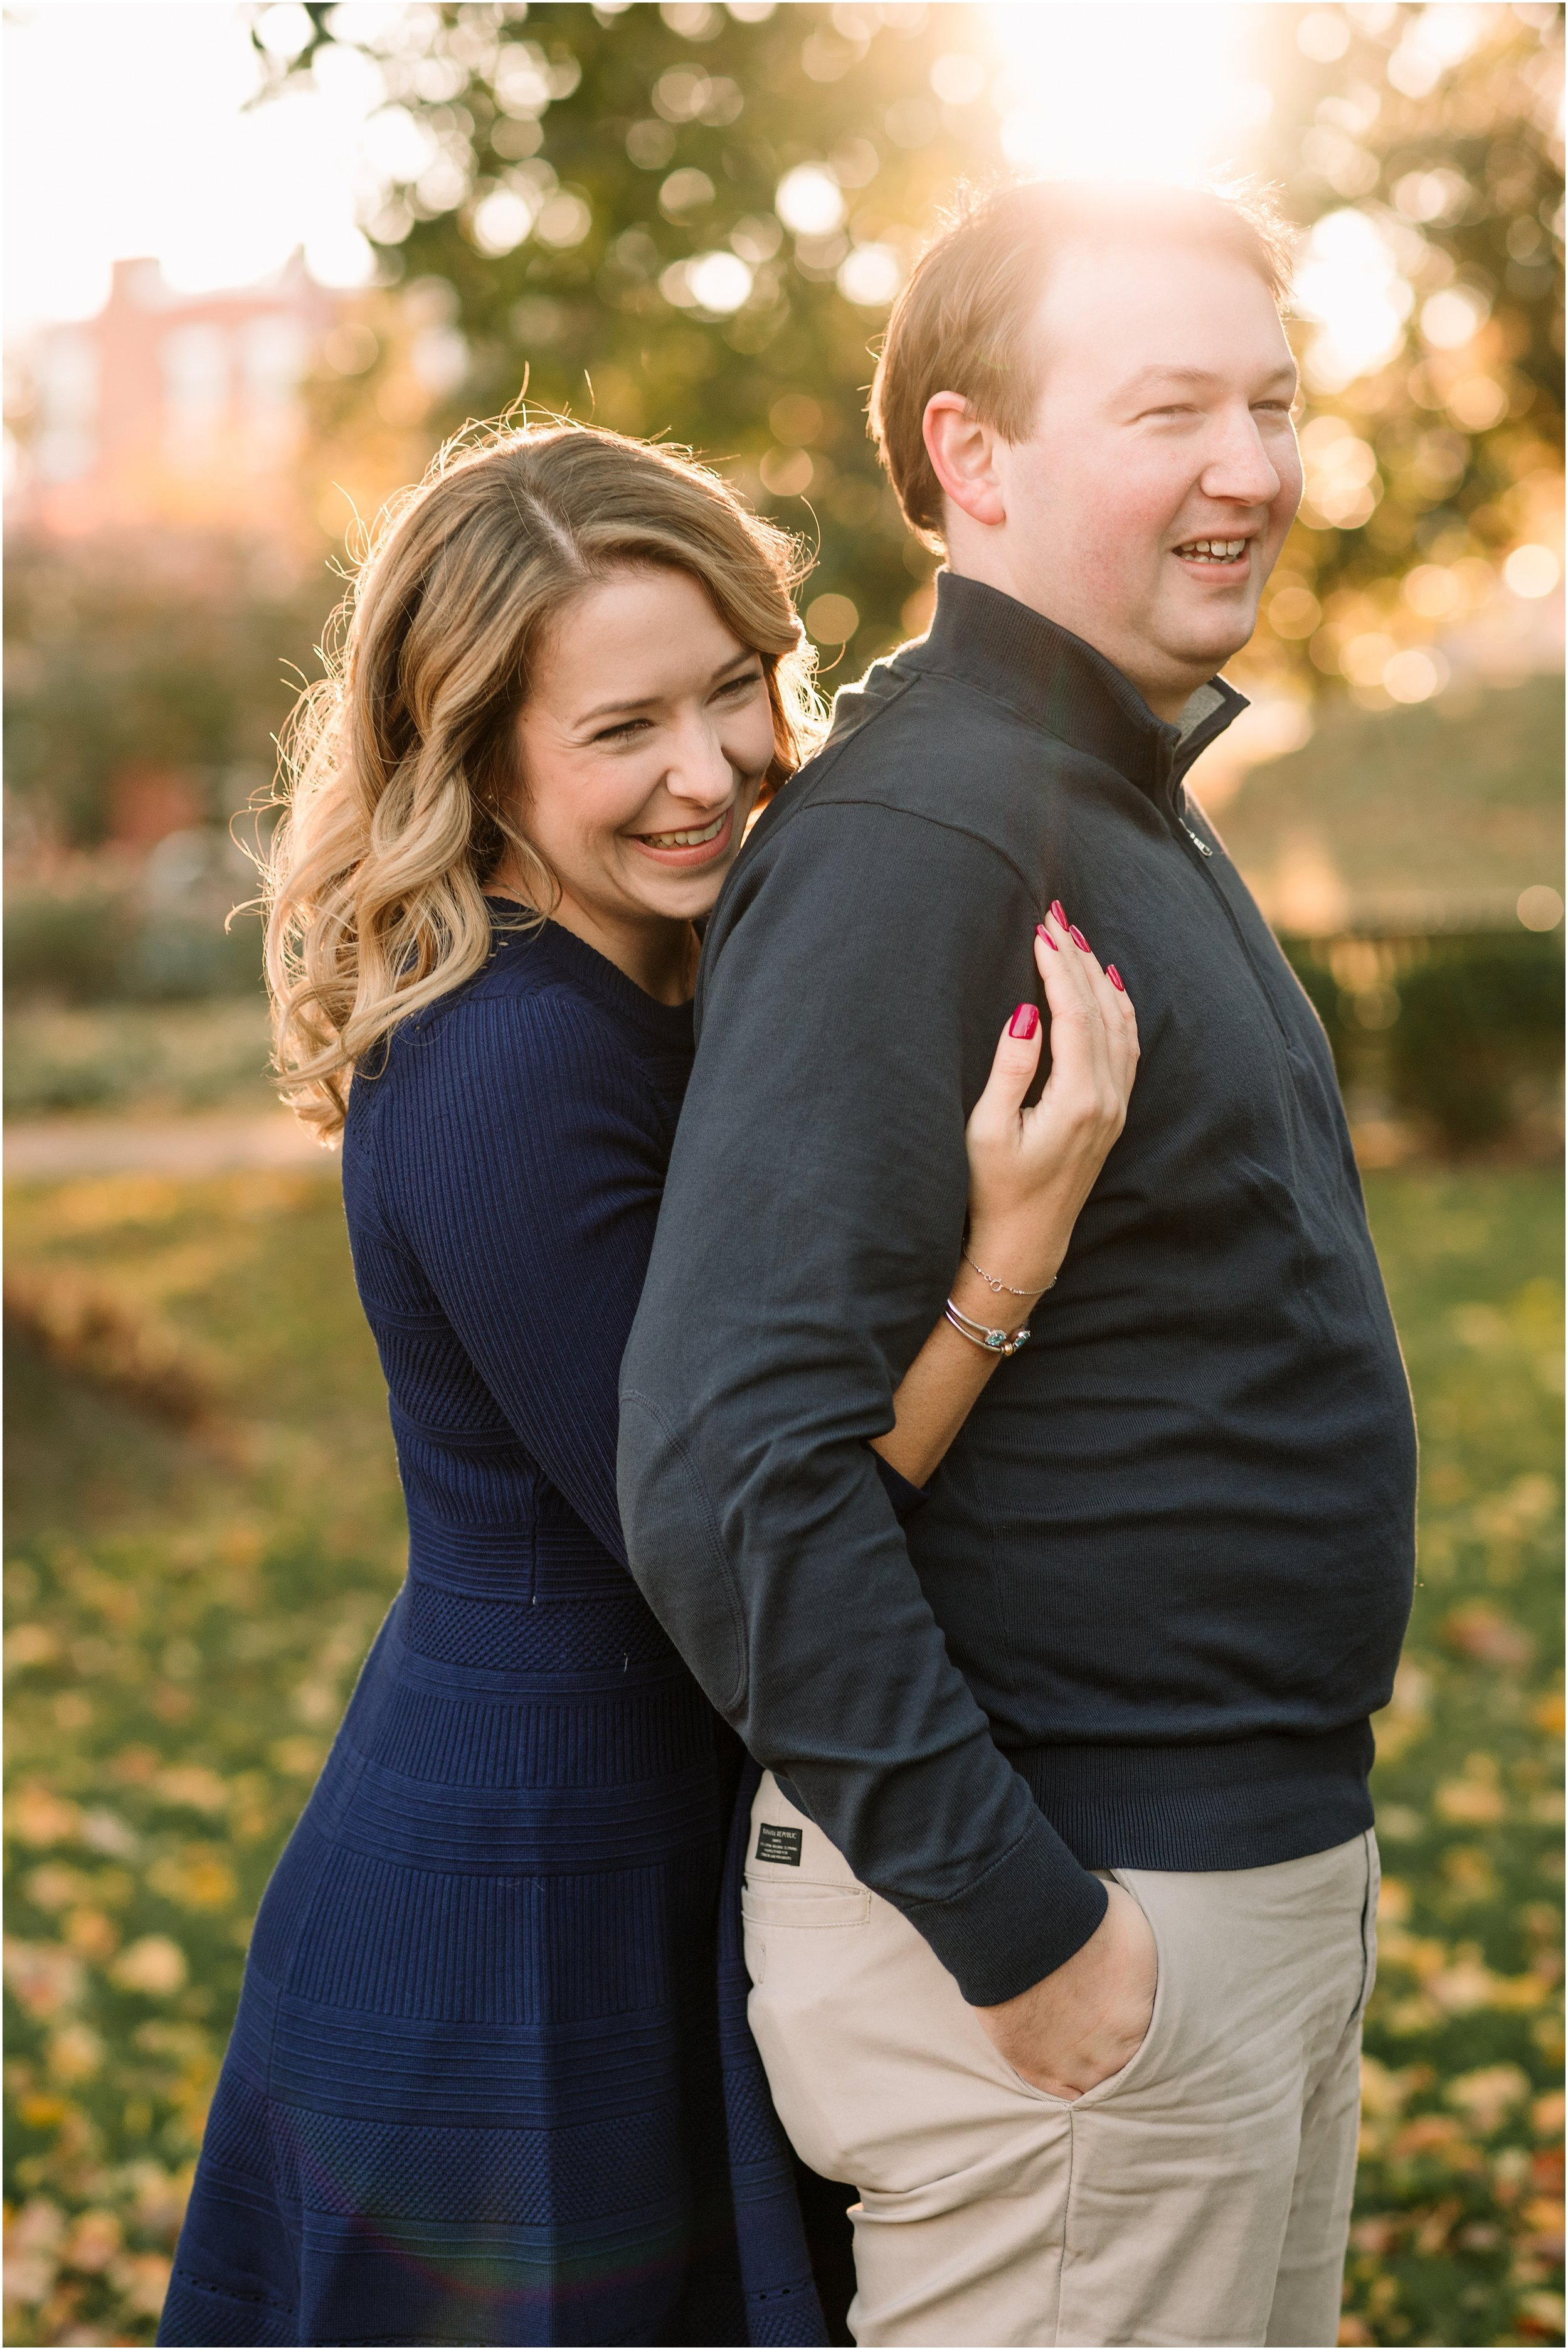 hannah leigh photography Annapolis MD Engagement Session_2358.jpg